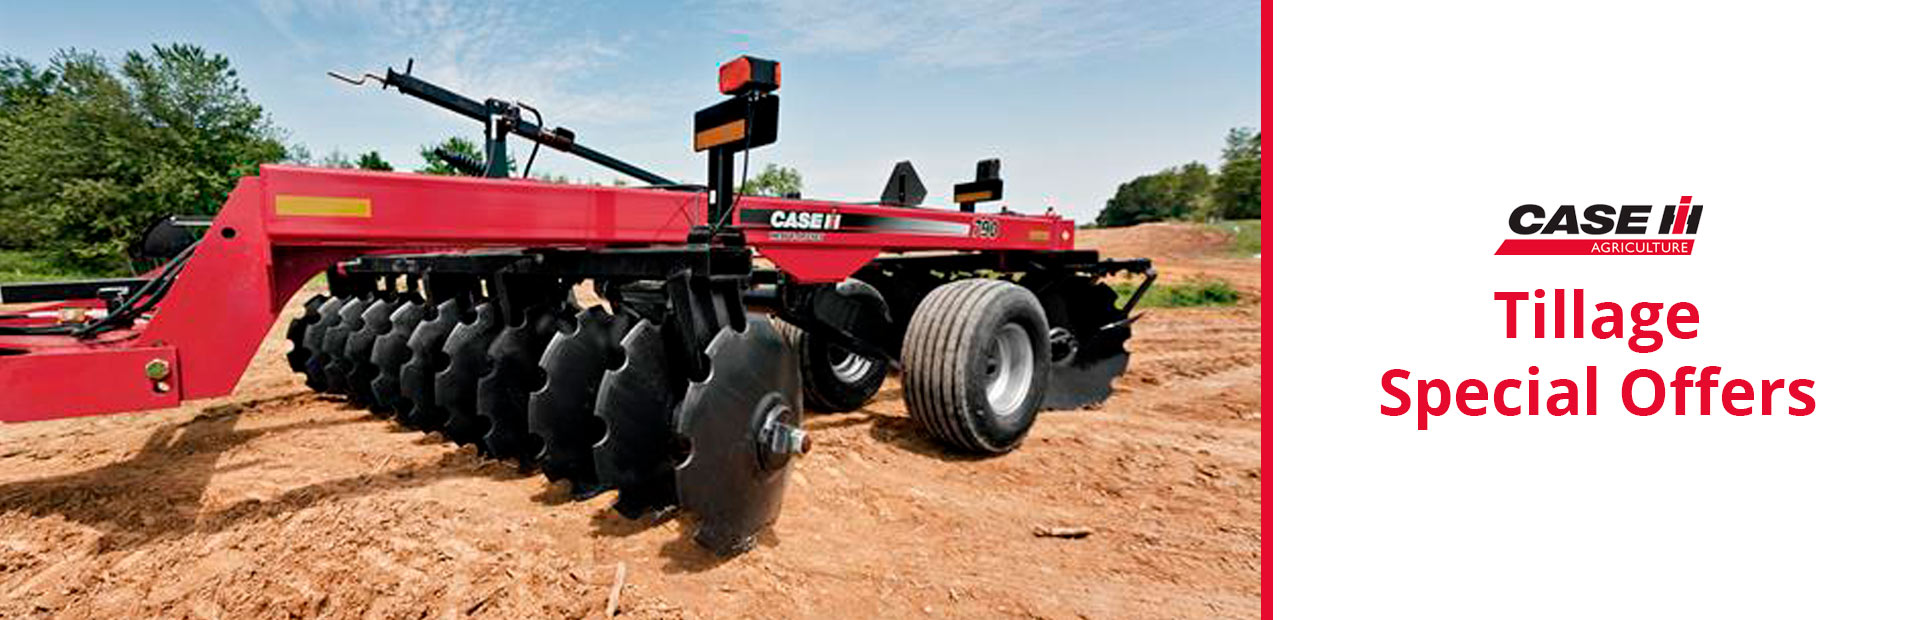 Case IH: Tillage Special Offers